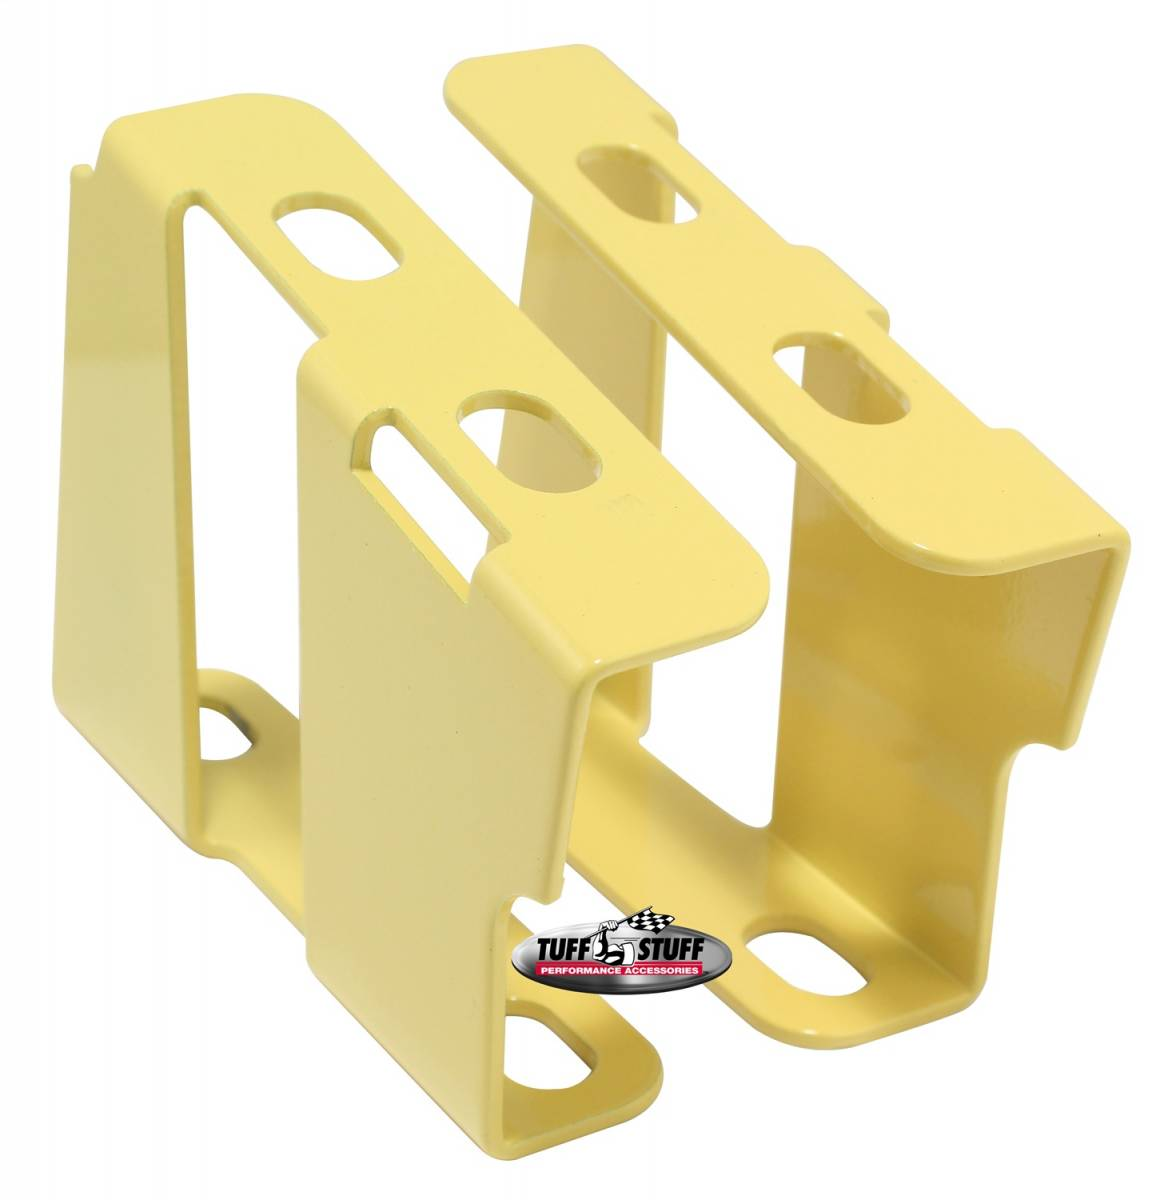 Tuff Stuff Performance - Brake Booster Brackets Incl. Left And Right Side 1955-1964 GM For Brake Booster PN[2121/2122/2123/2124/2221/2222/2223/2228/2229/2231] Yellow 4651BYELLOW